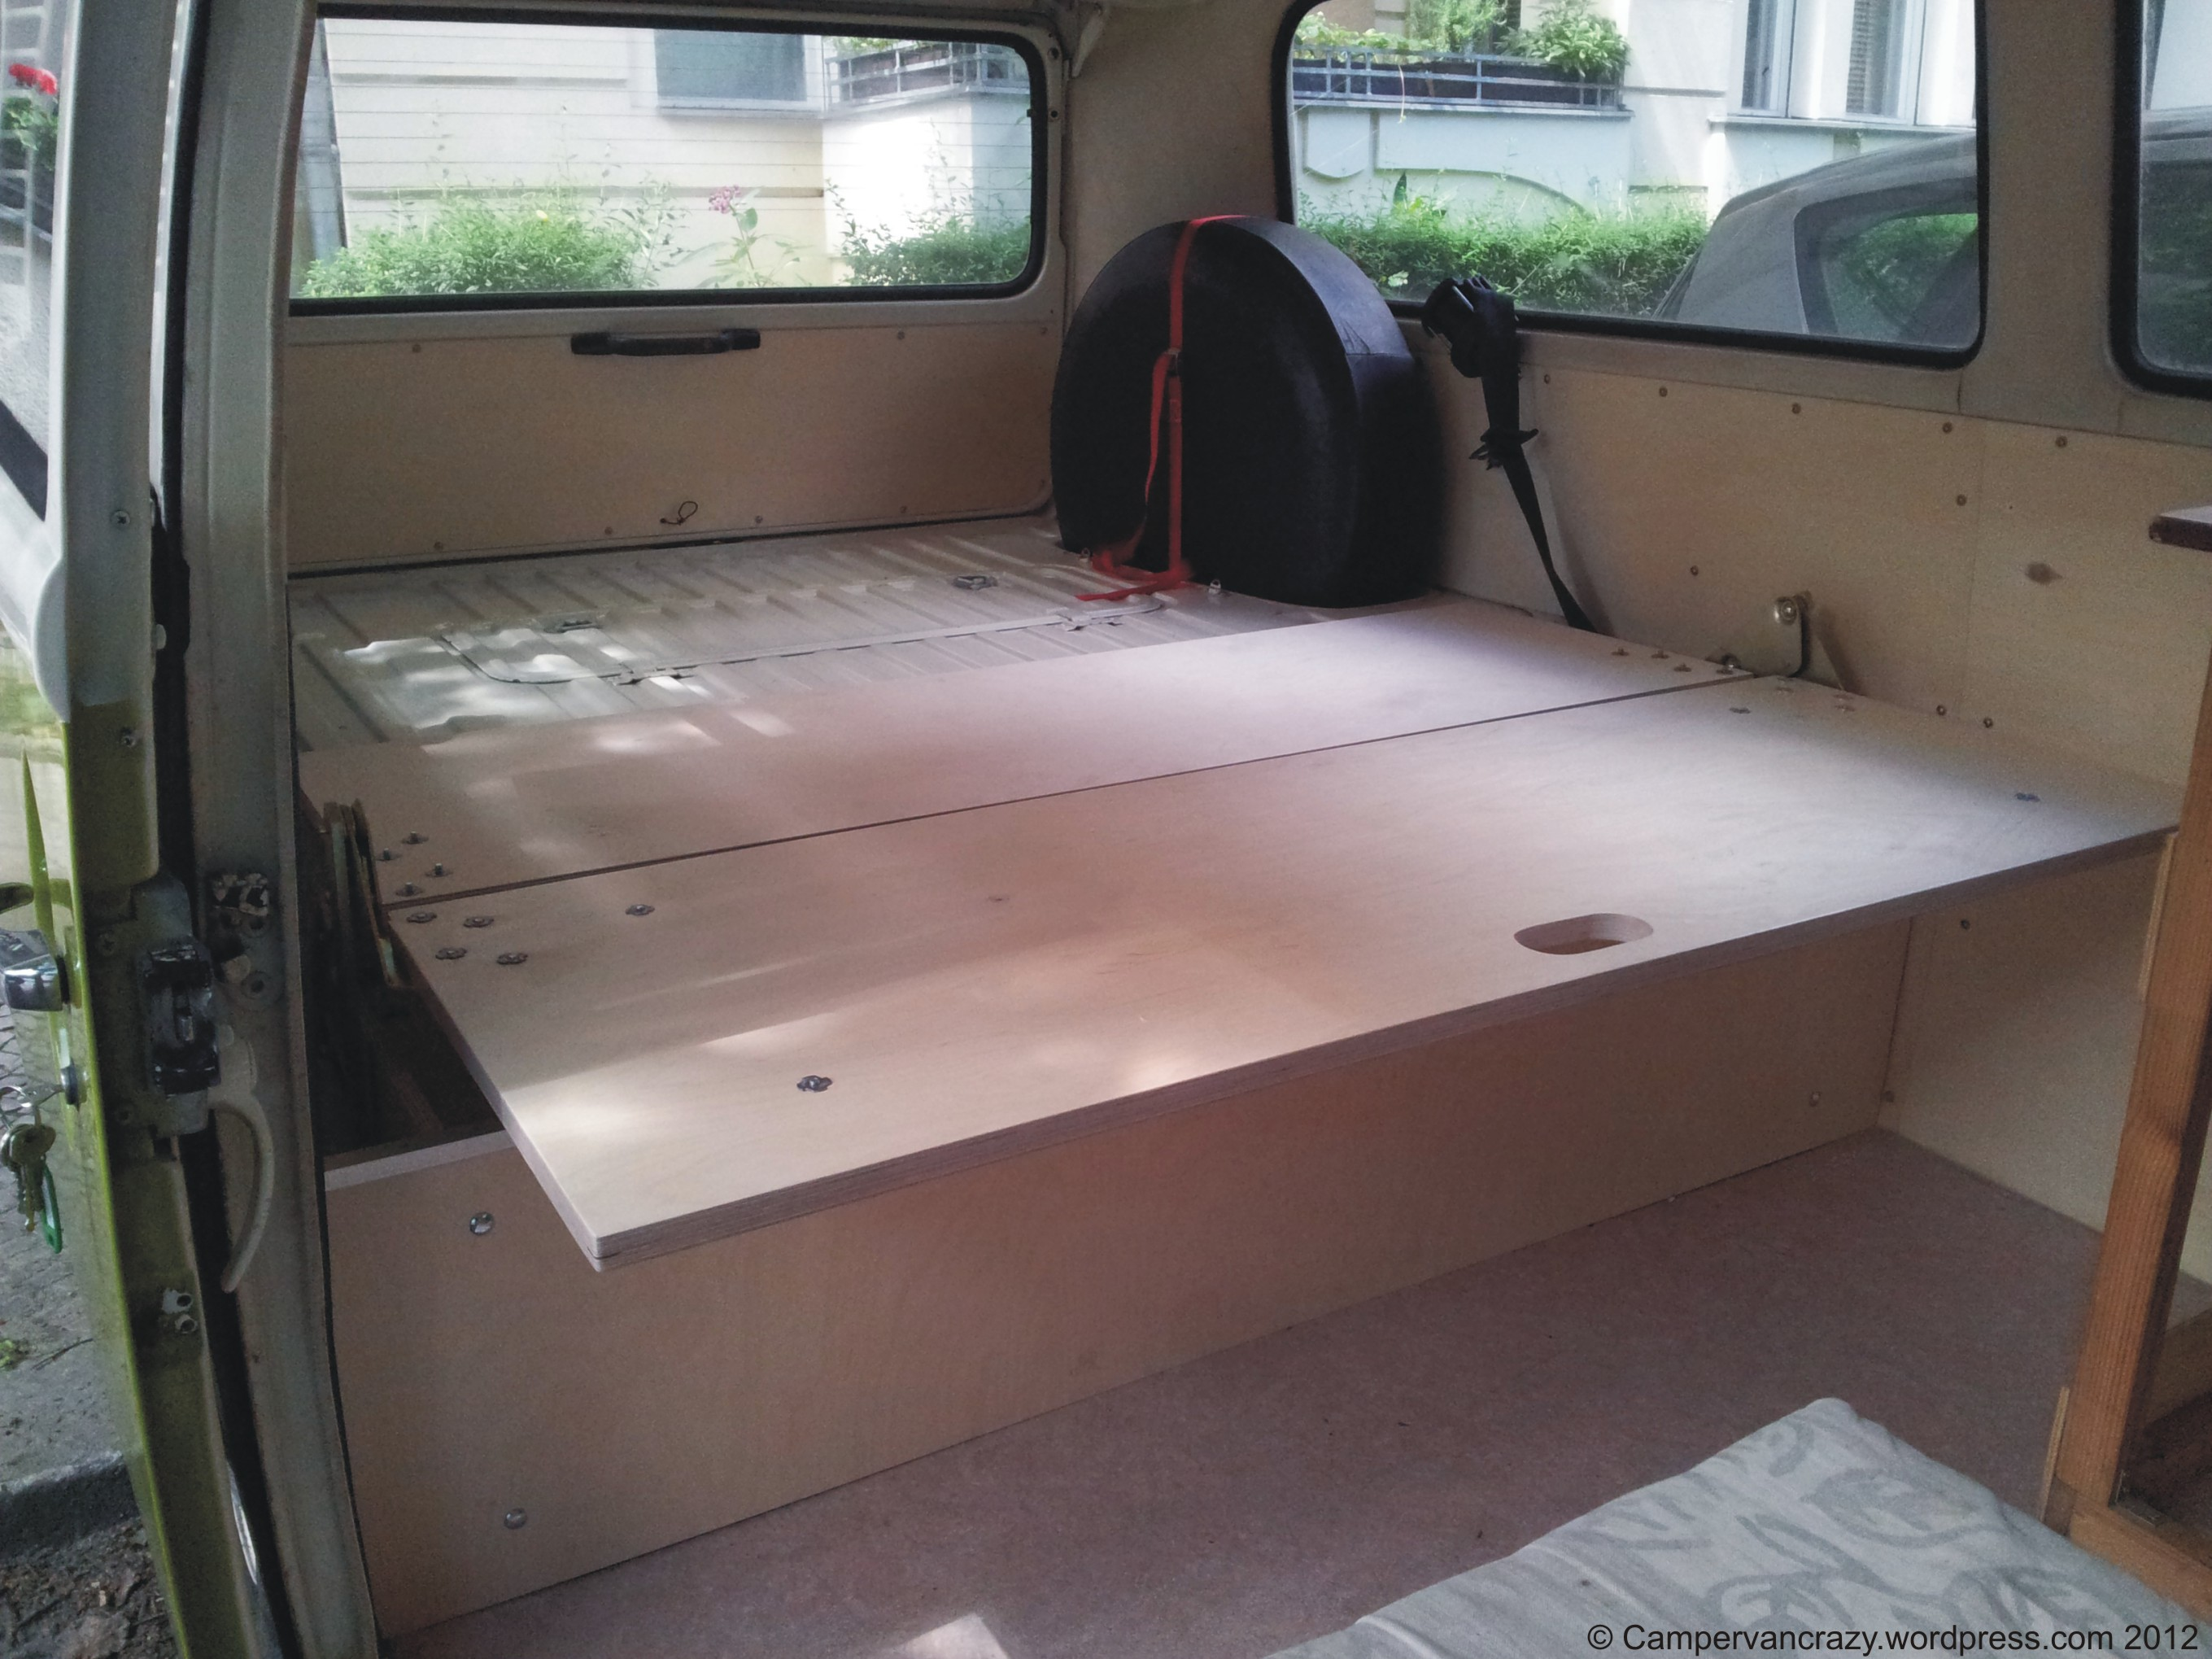 Bench Bed Combination Campervan Crazy